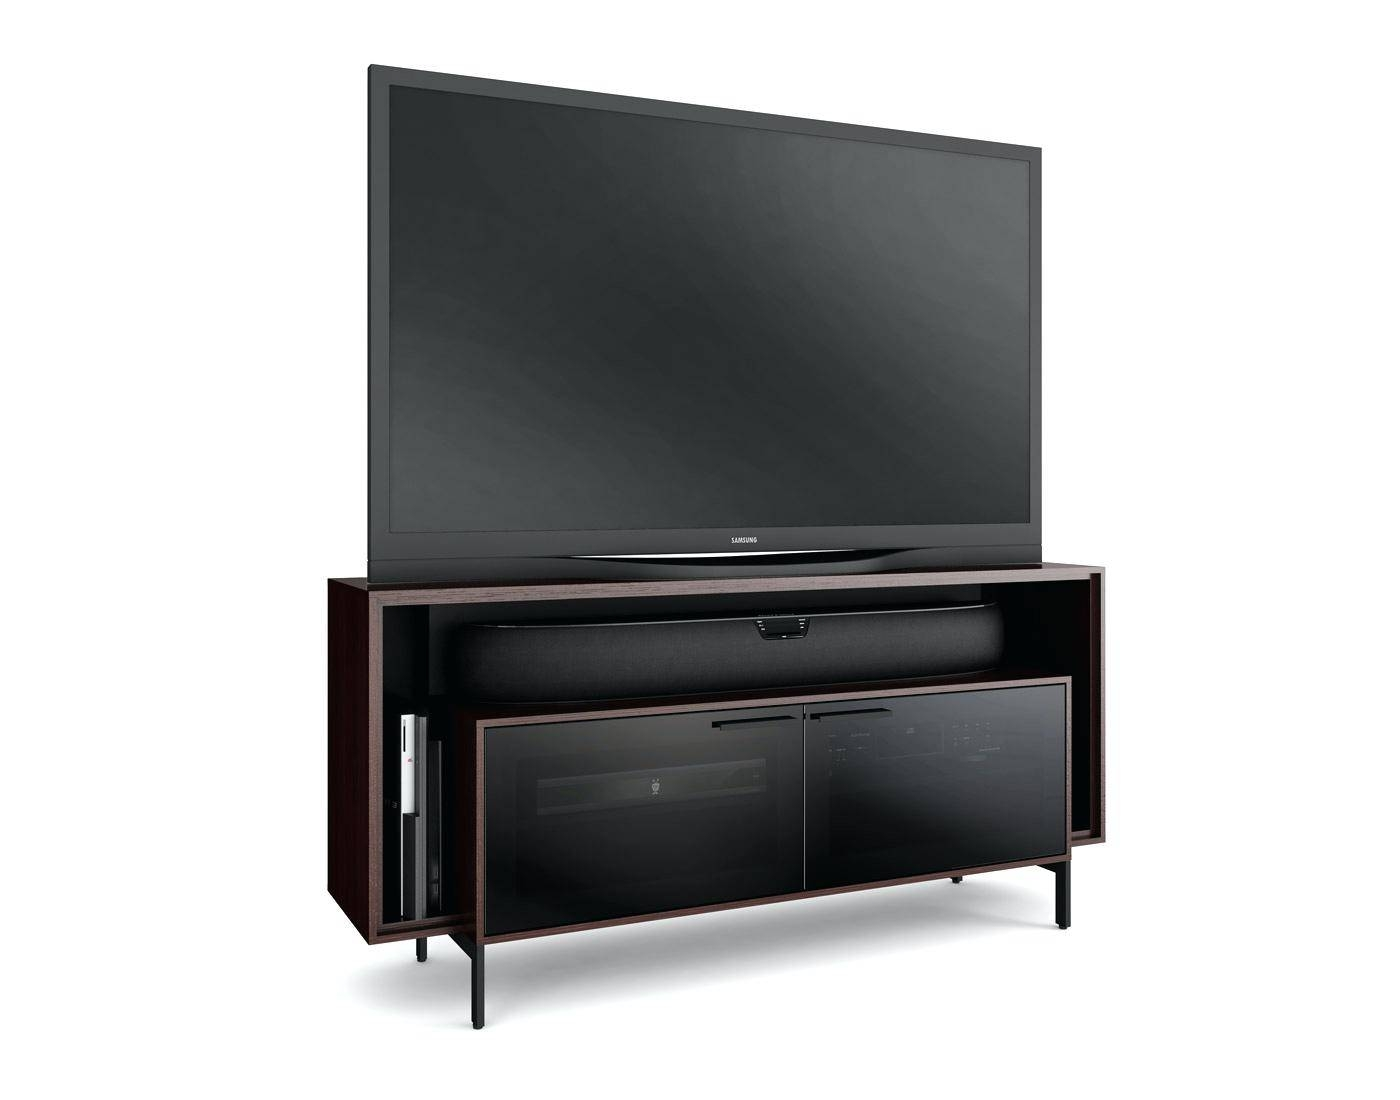 Tv Stand: Charming Slimline Tv Stand Design (View 10 of 15)